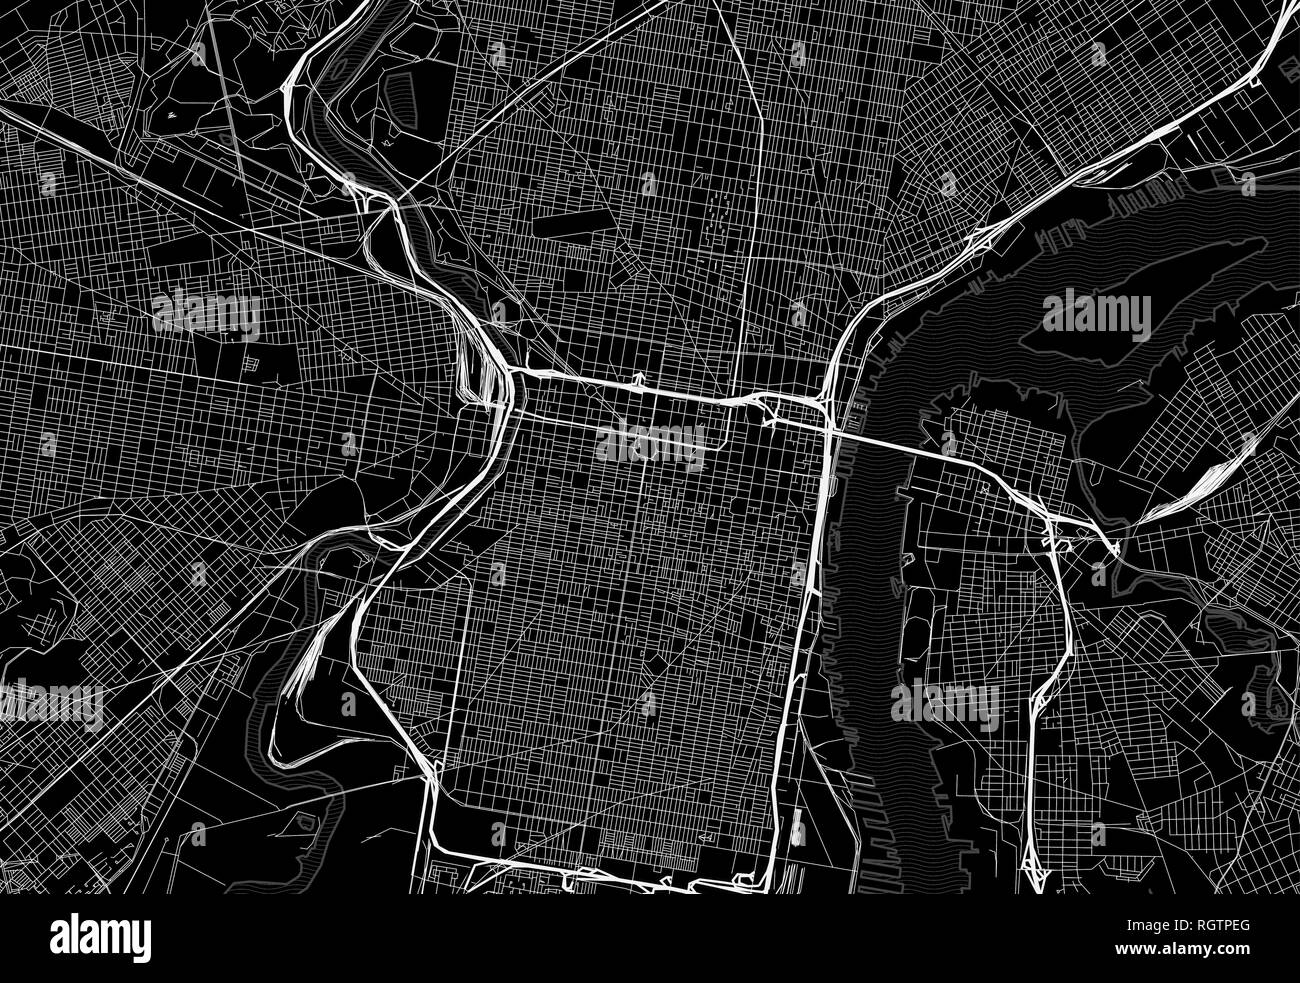 Black map of downtown Philadelphia, U.S.A. This vector artmap is created as a decorative background or a unique travel sign. - Stock Vector